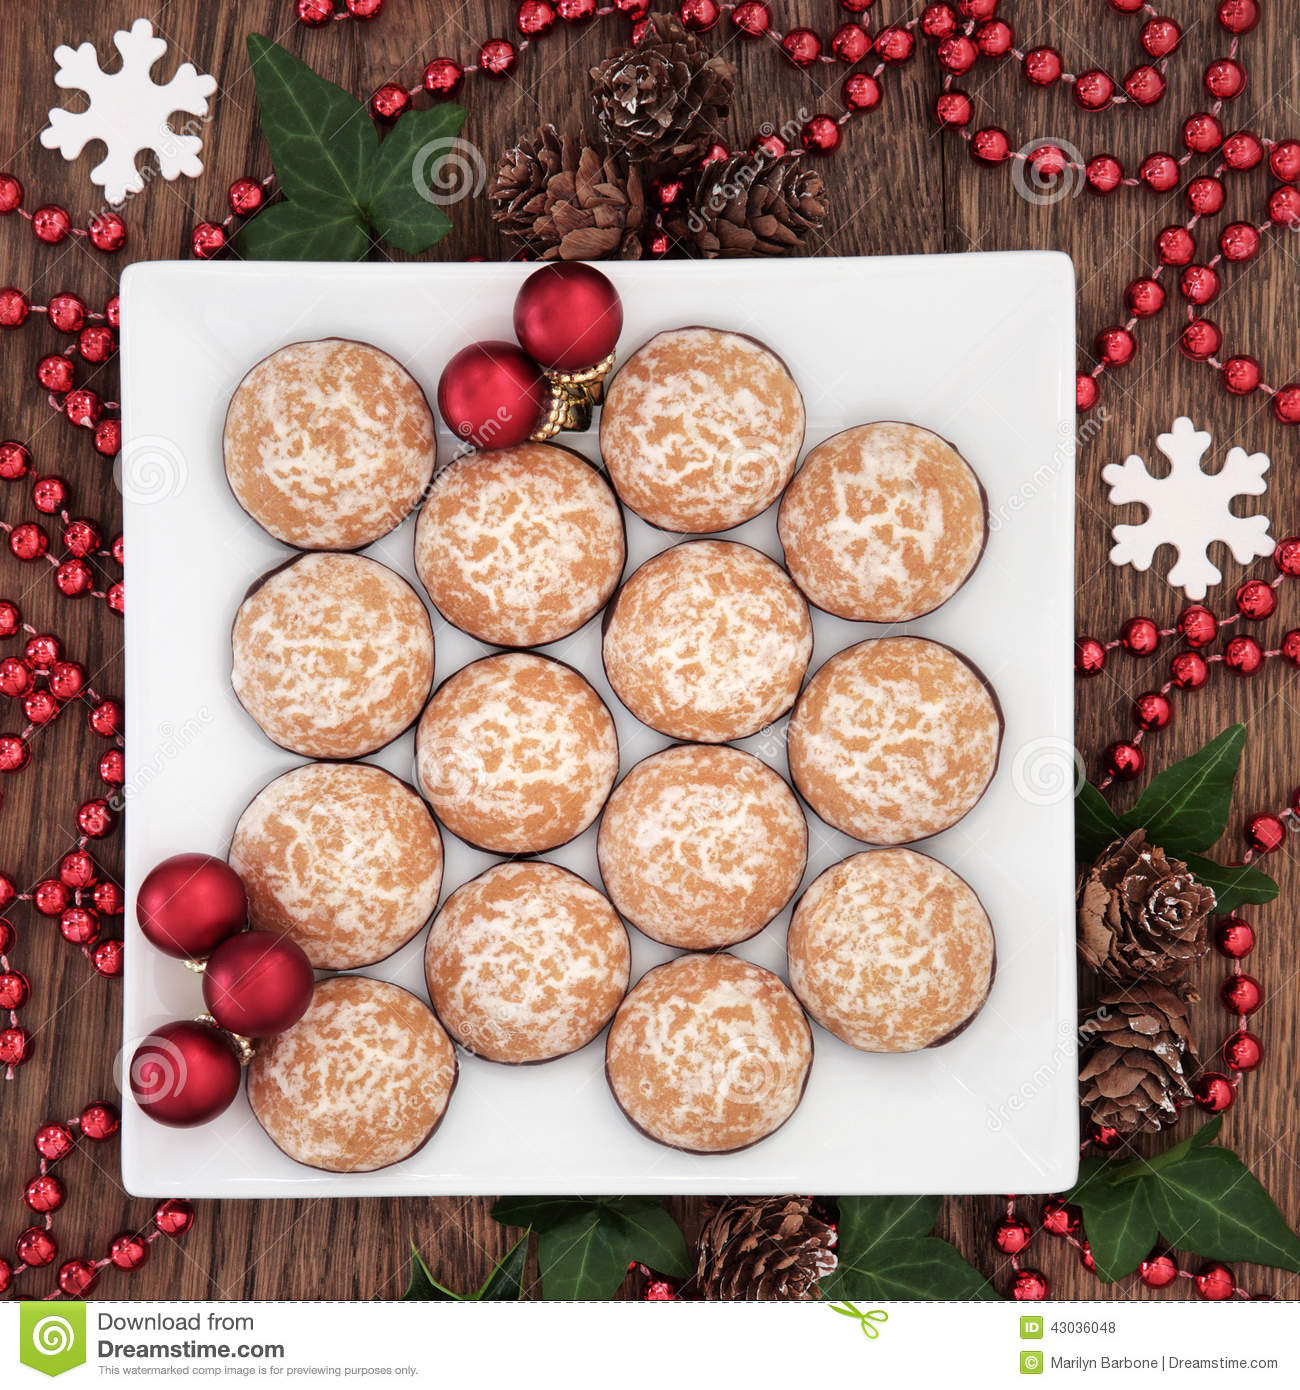 Christmas Biscuit Background With Snowflakes Winter Greenery And Red Bauble Decorations Over Old Oak Wood Table